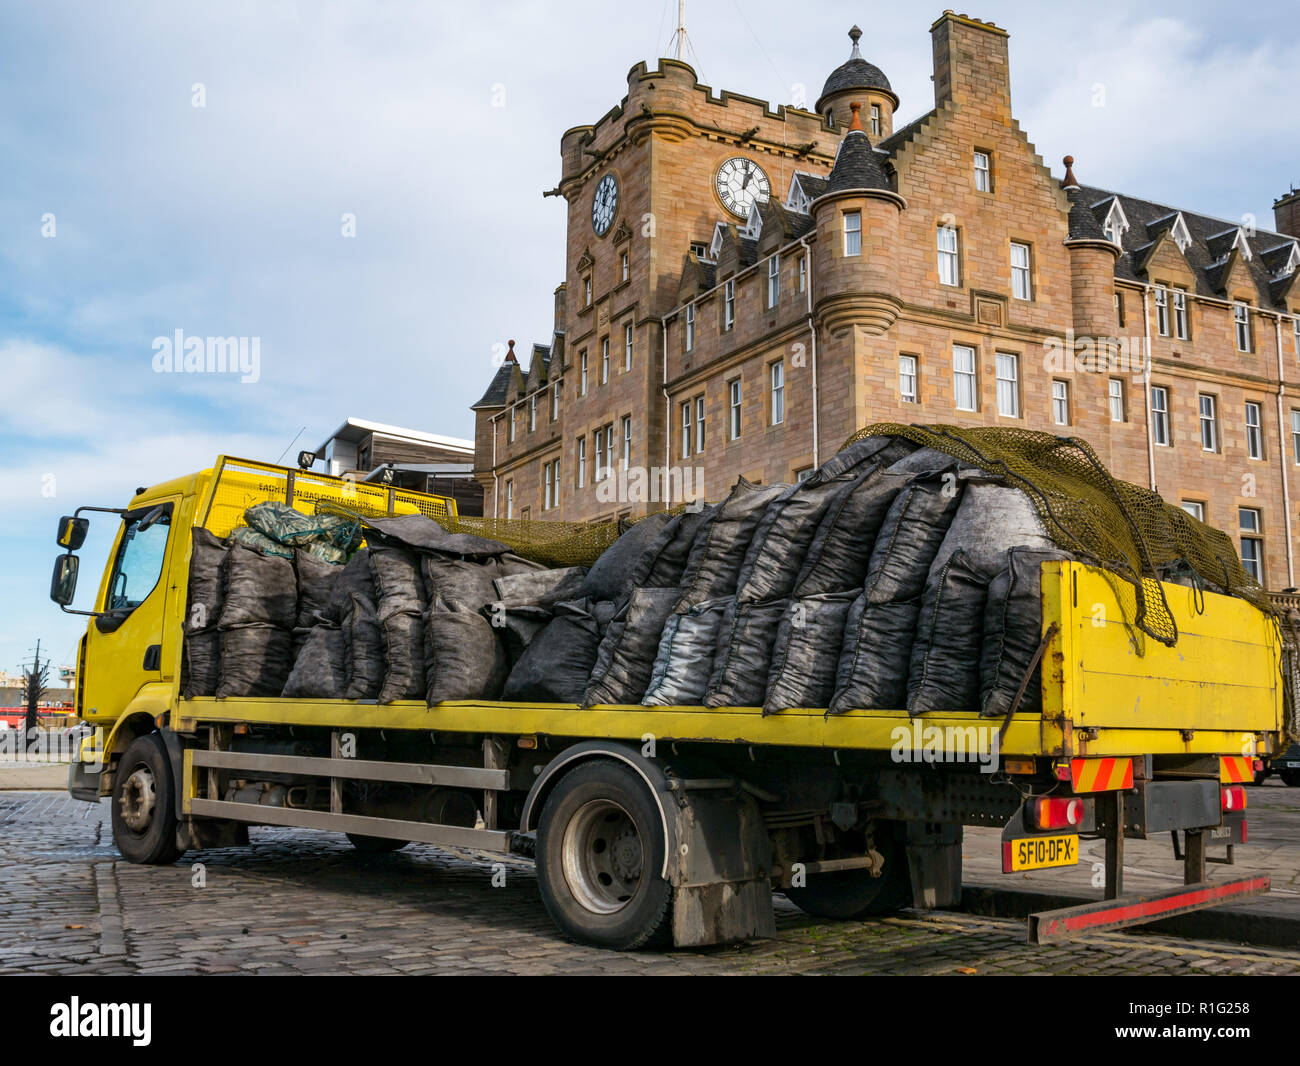 Yellow flatbed  lorry delivering coal sacks with Malmaison Hotel, Tower Place, Leith, Edinburgh, Scotland, UK - Stock Image